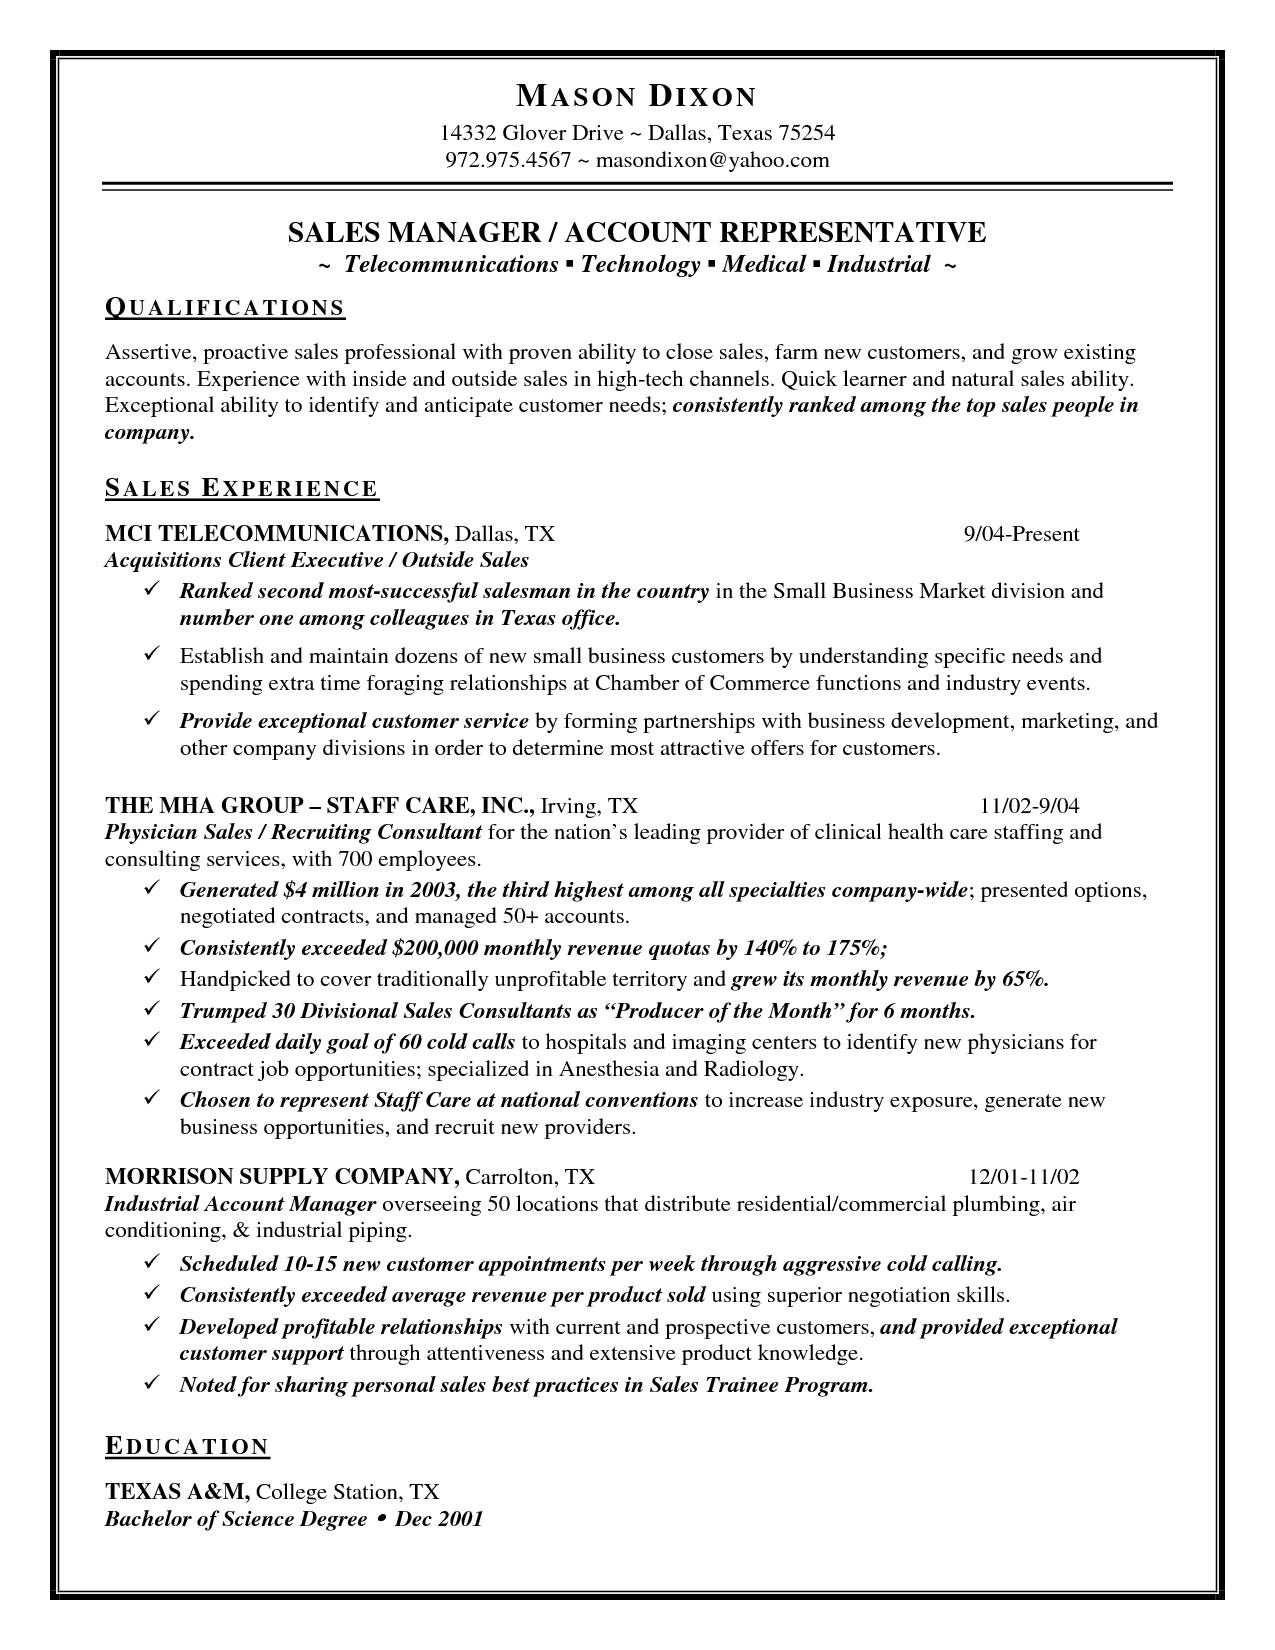 quick learner resume | Inside Sales Resume Sample MASON DIXON 14332 ...